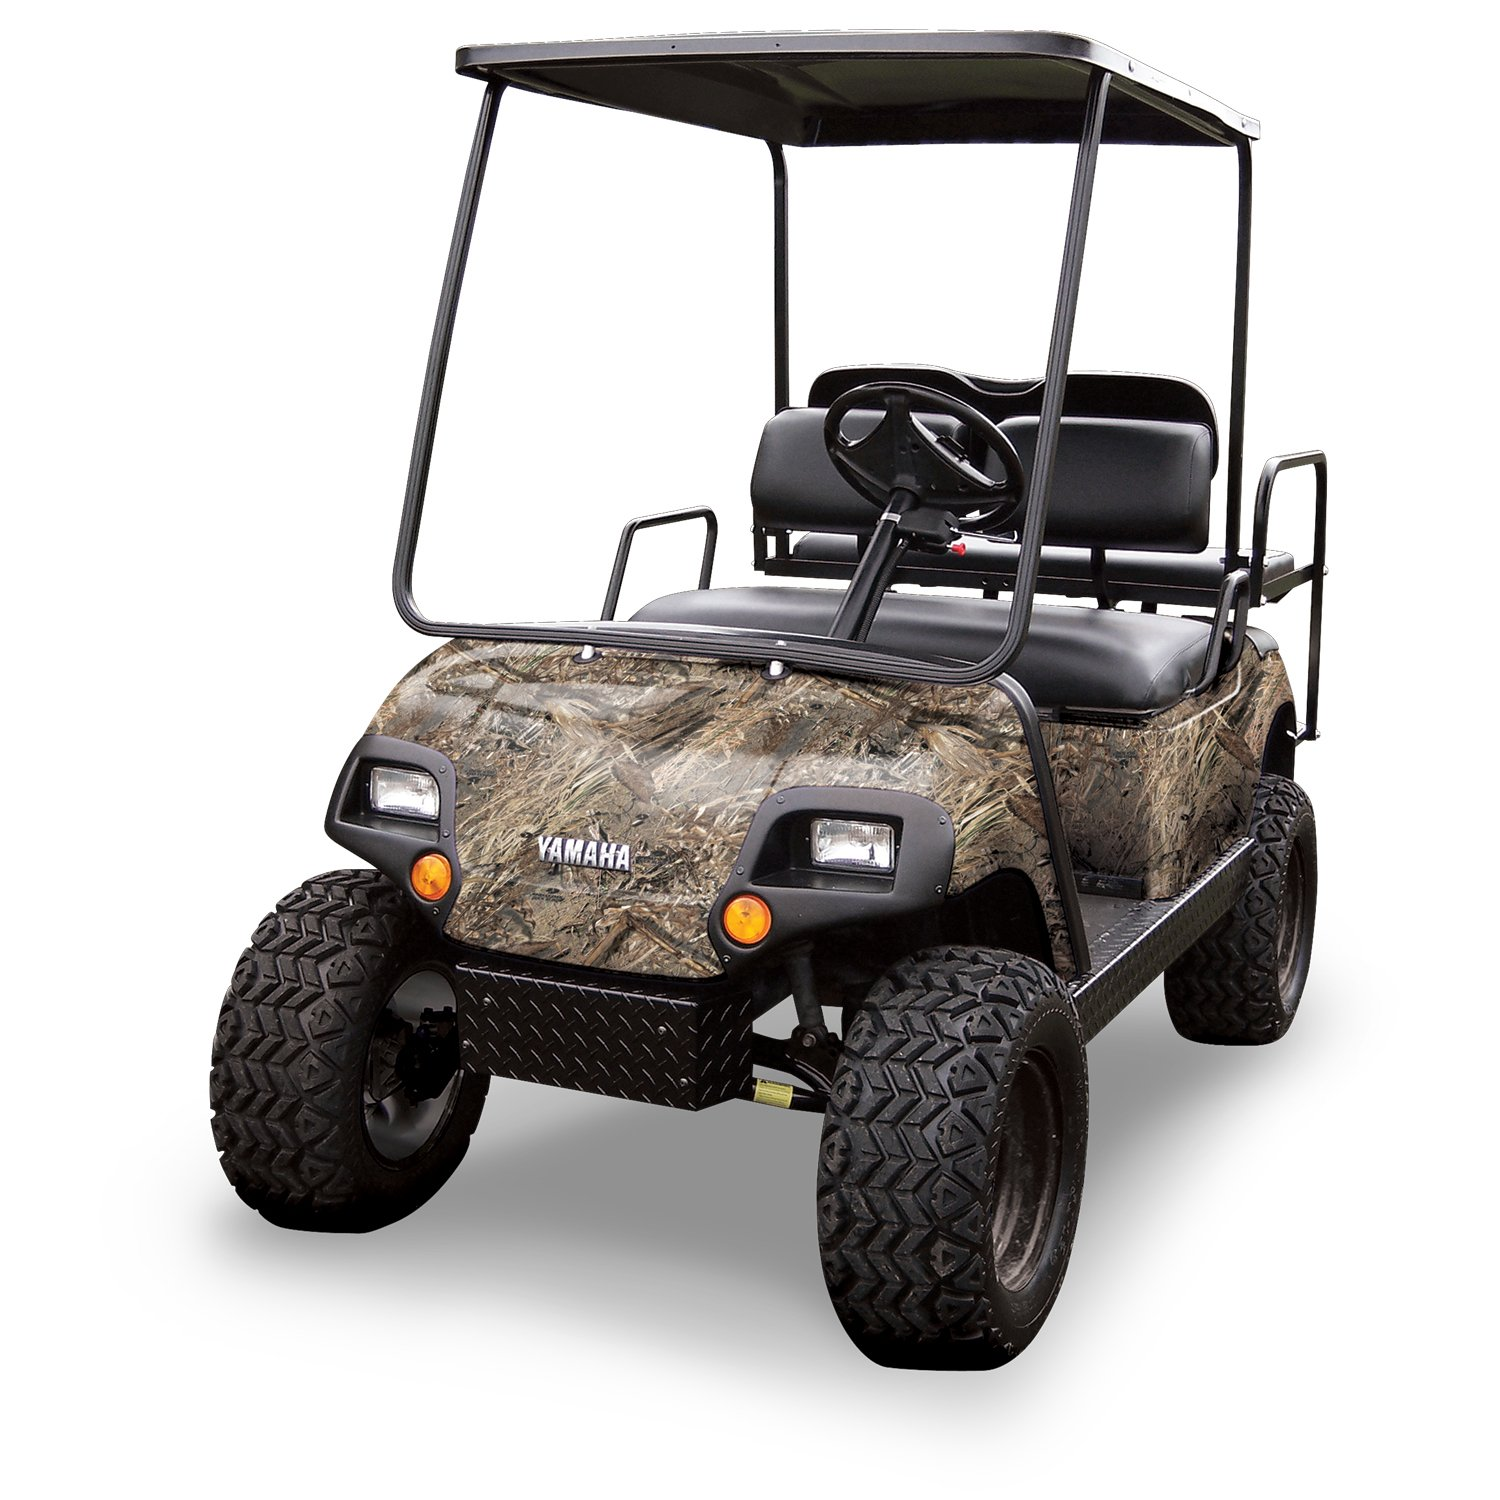 Mossy Oak Graphics (10060-DB) Duck Blind 4' x 10' Roll Golf Cart Camouflage Kit